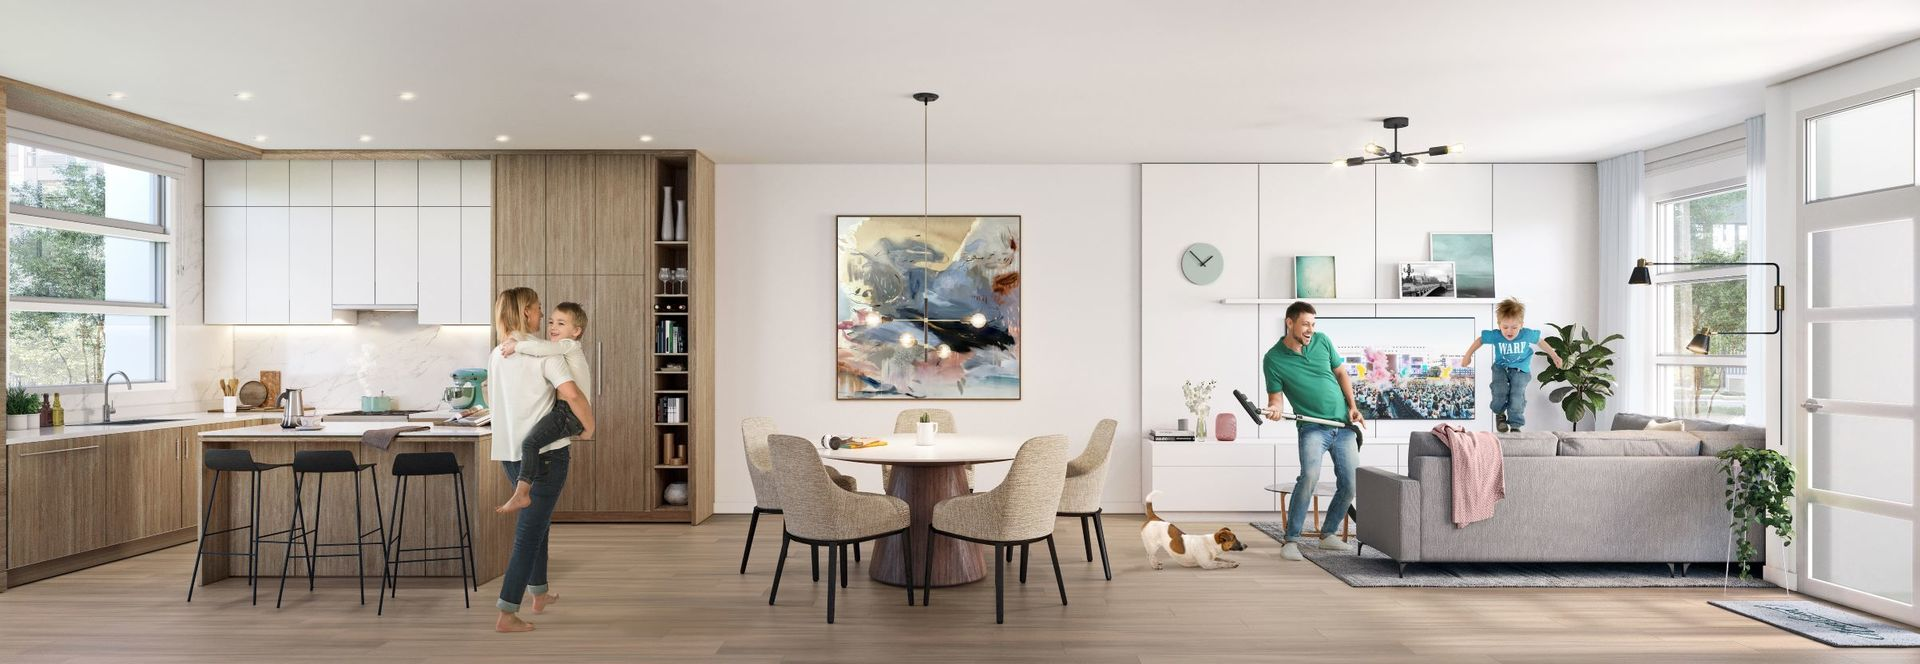 kin-collection-parkside-living-dining-rendering at The Kin Collection (7470 Buller Avenue, Metrotown, Burnaby South)